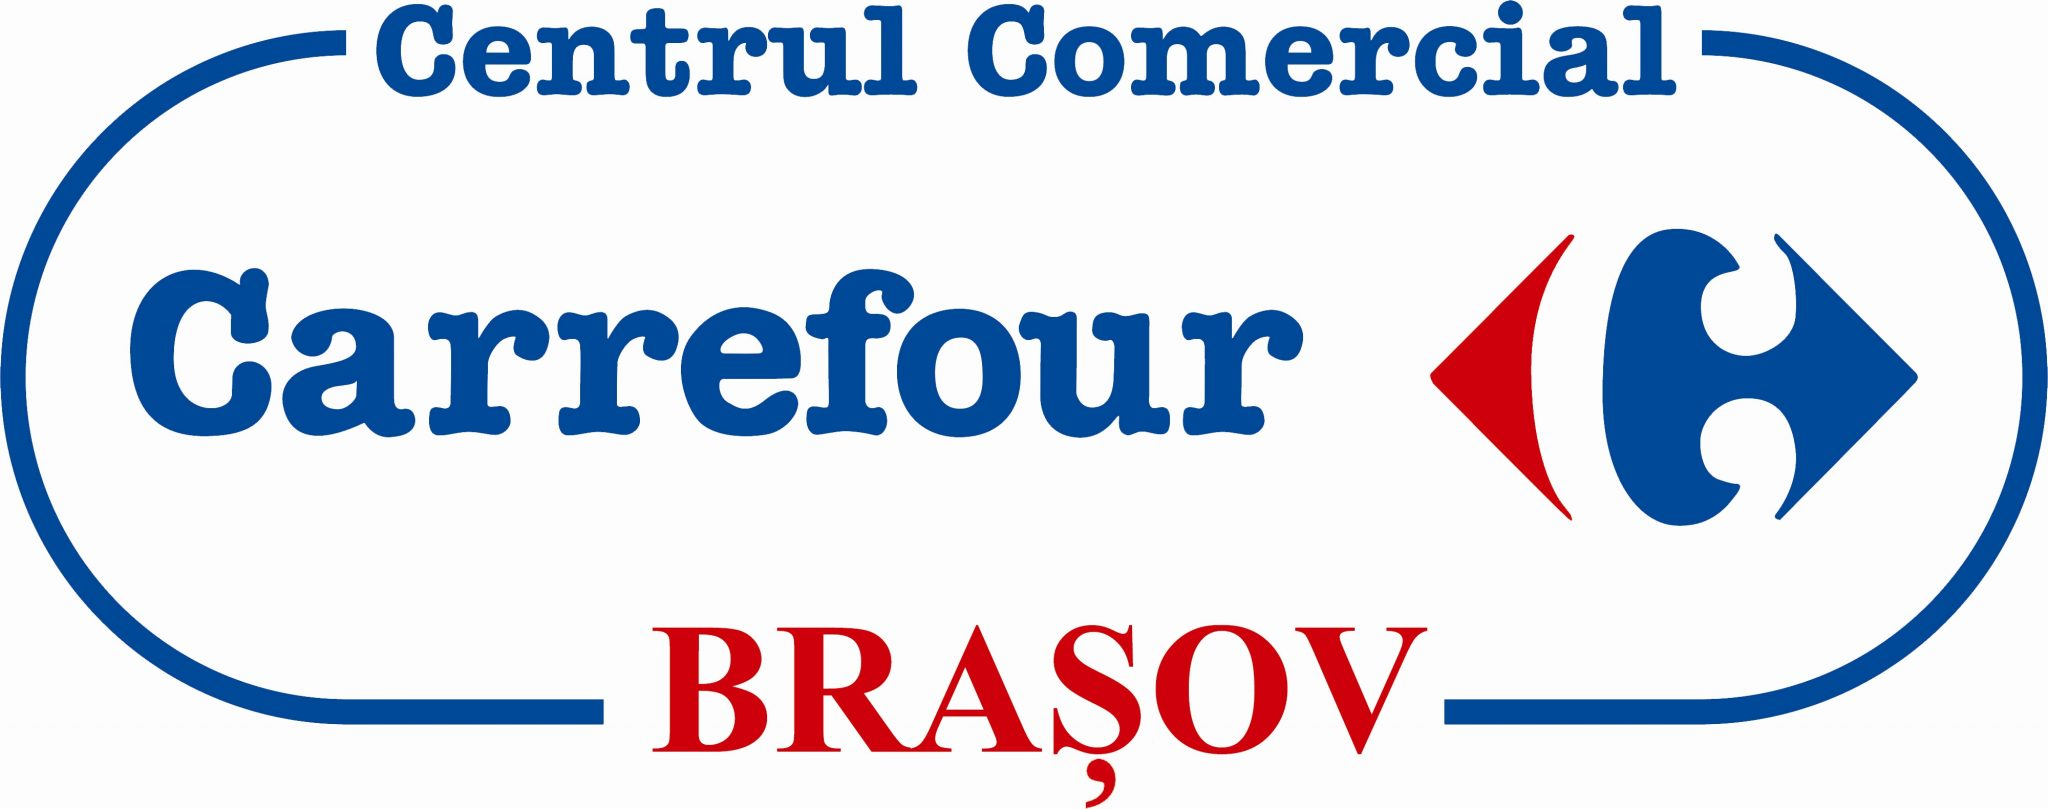 logo Carrefour Brasov_transparent copy